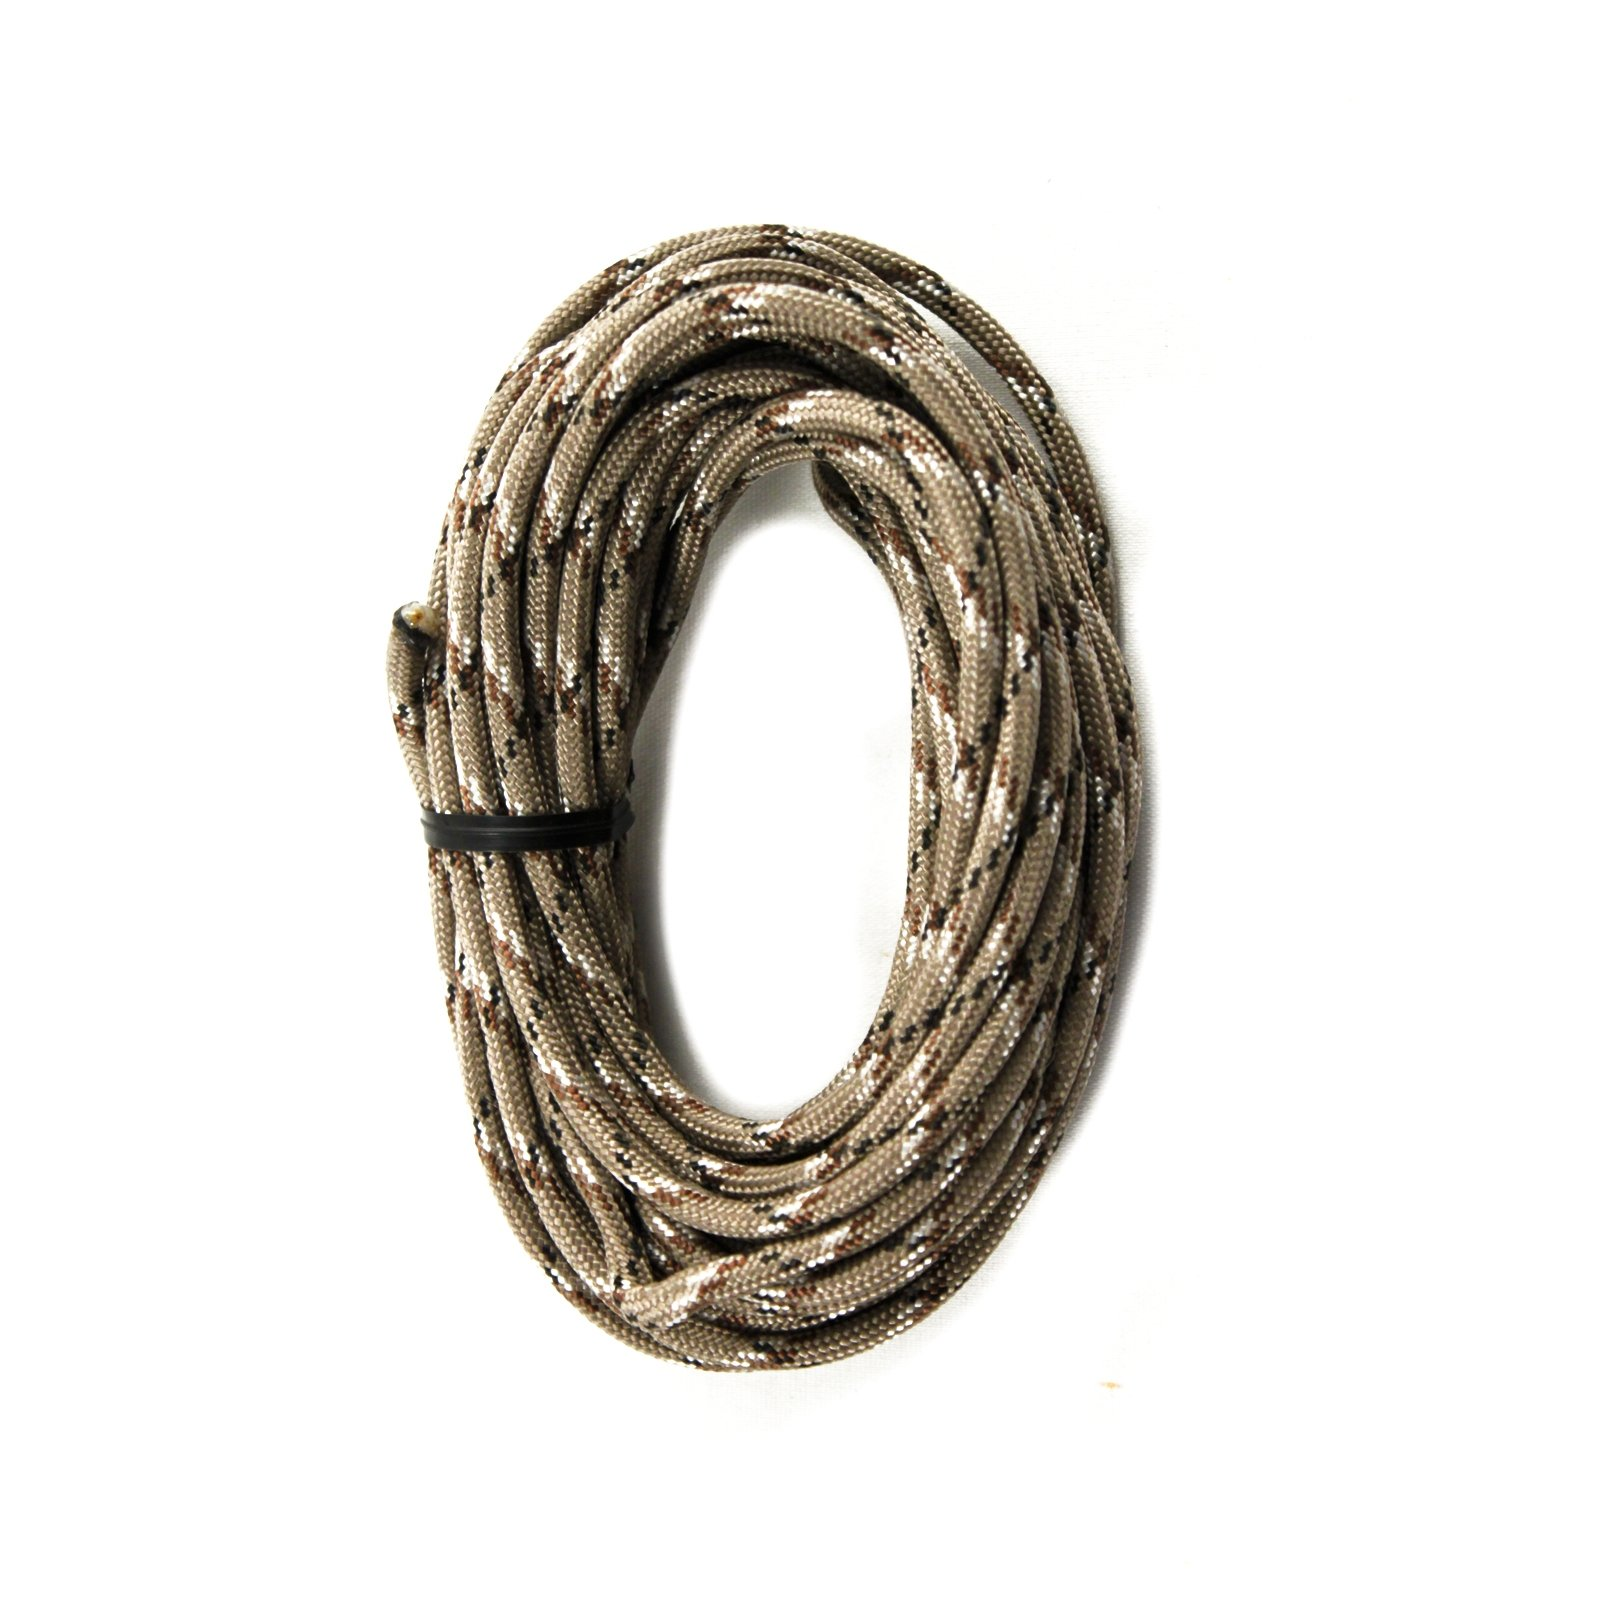 550lbs Strength Survival Paracord Rope Desert Camo- 500ft